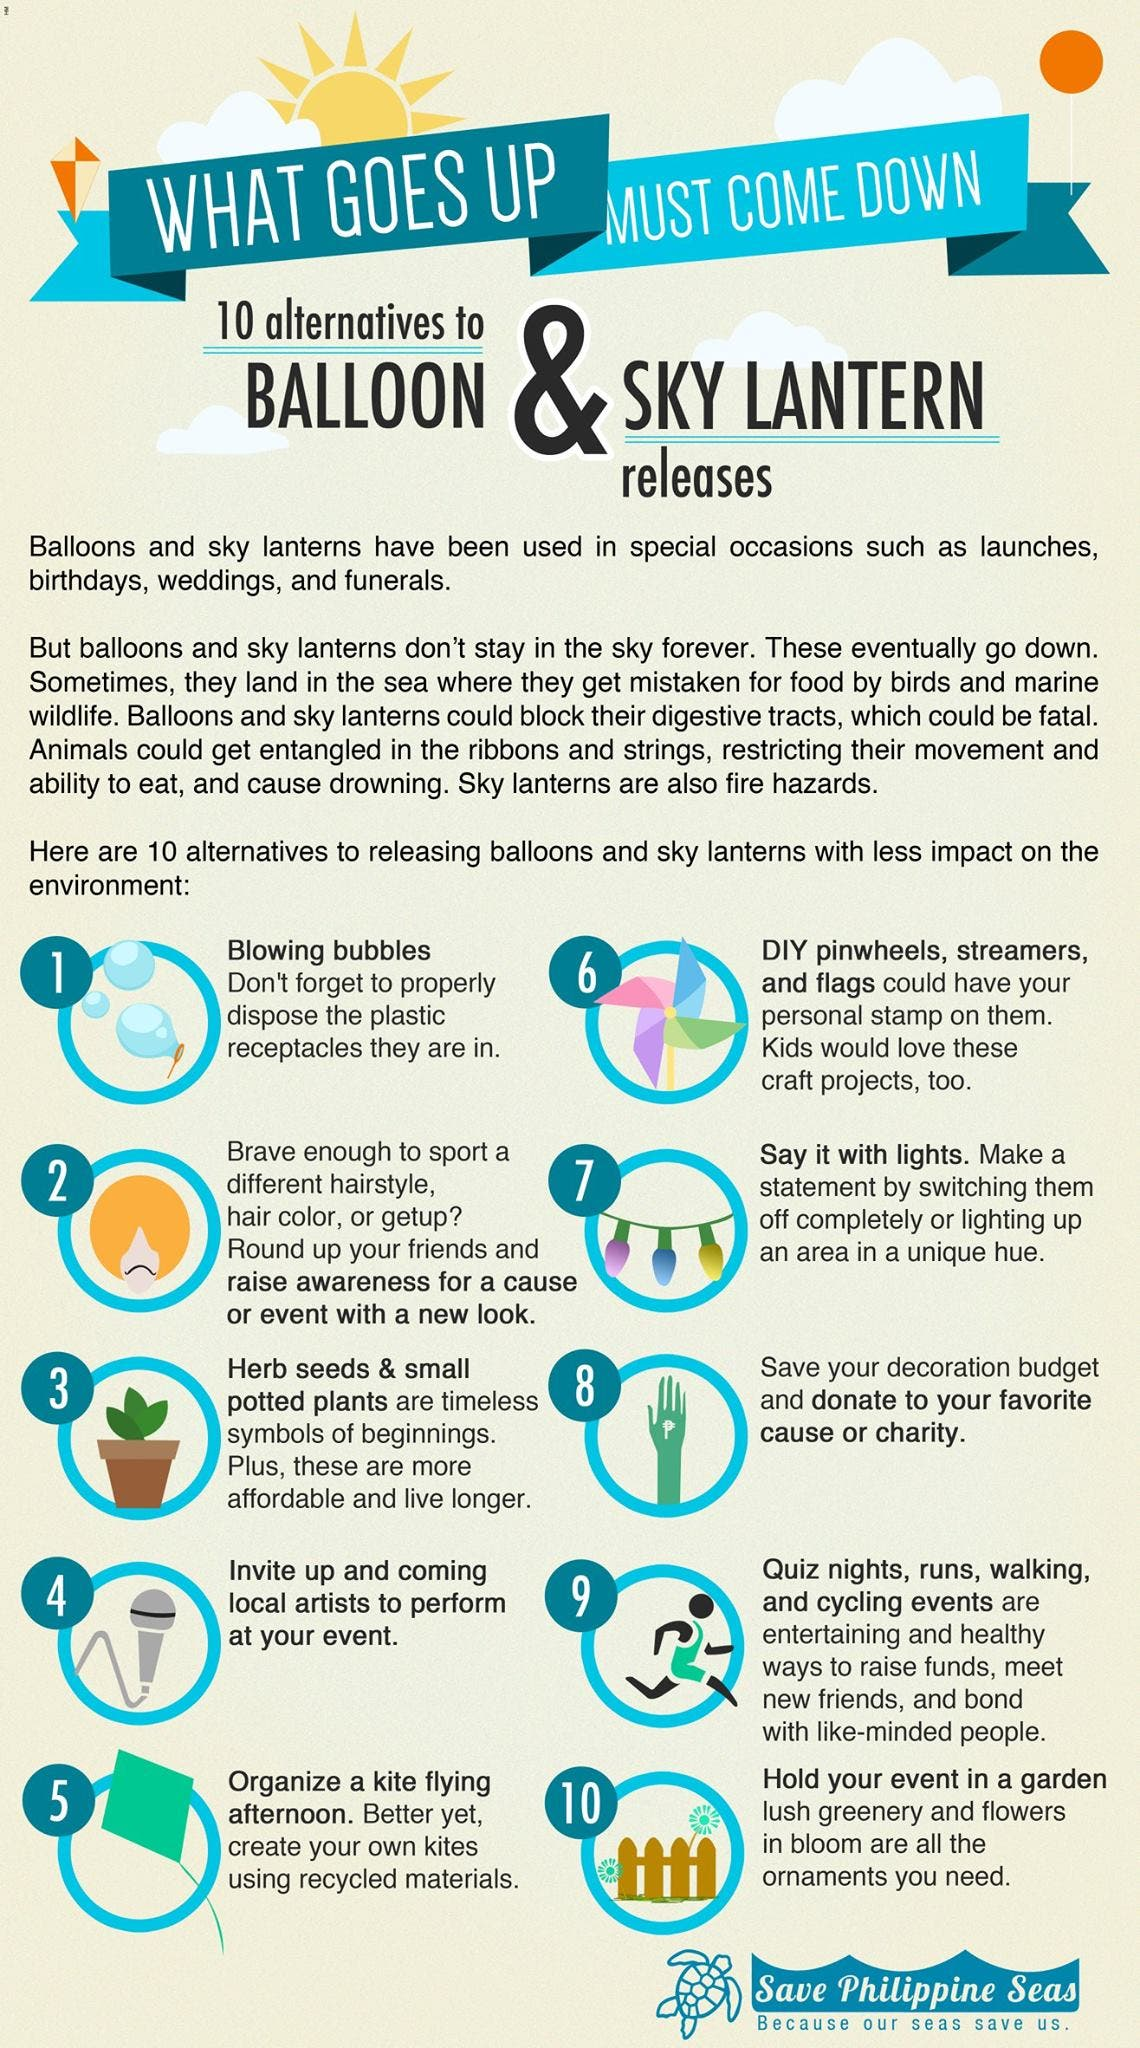 Alternatives to balloon and sky lantern releases